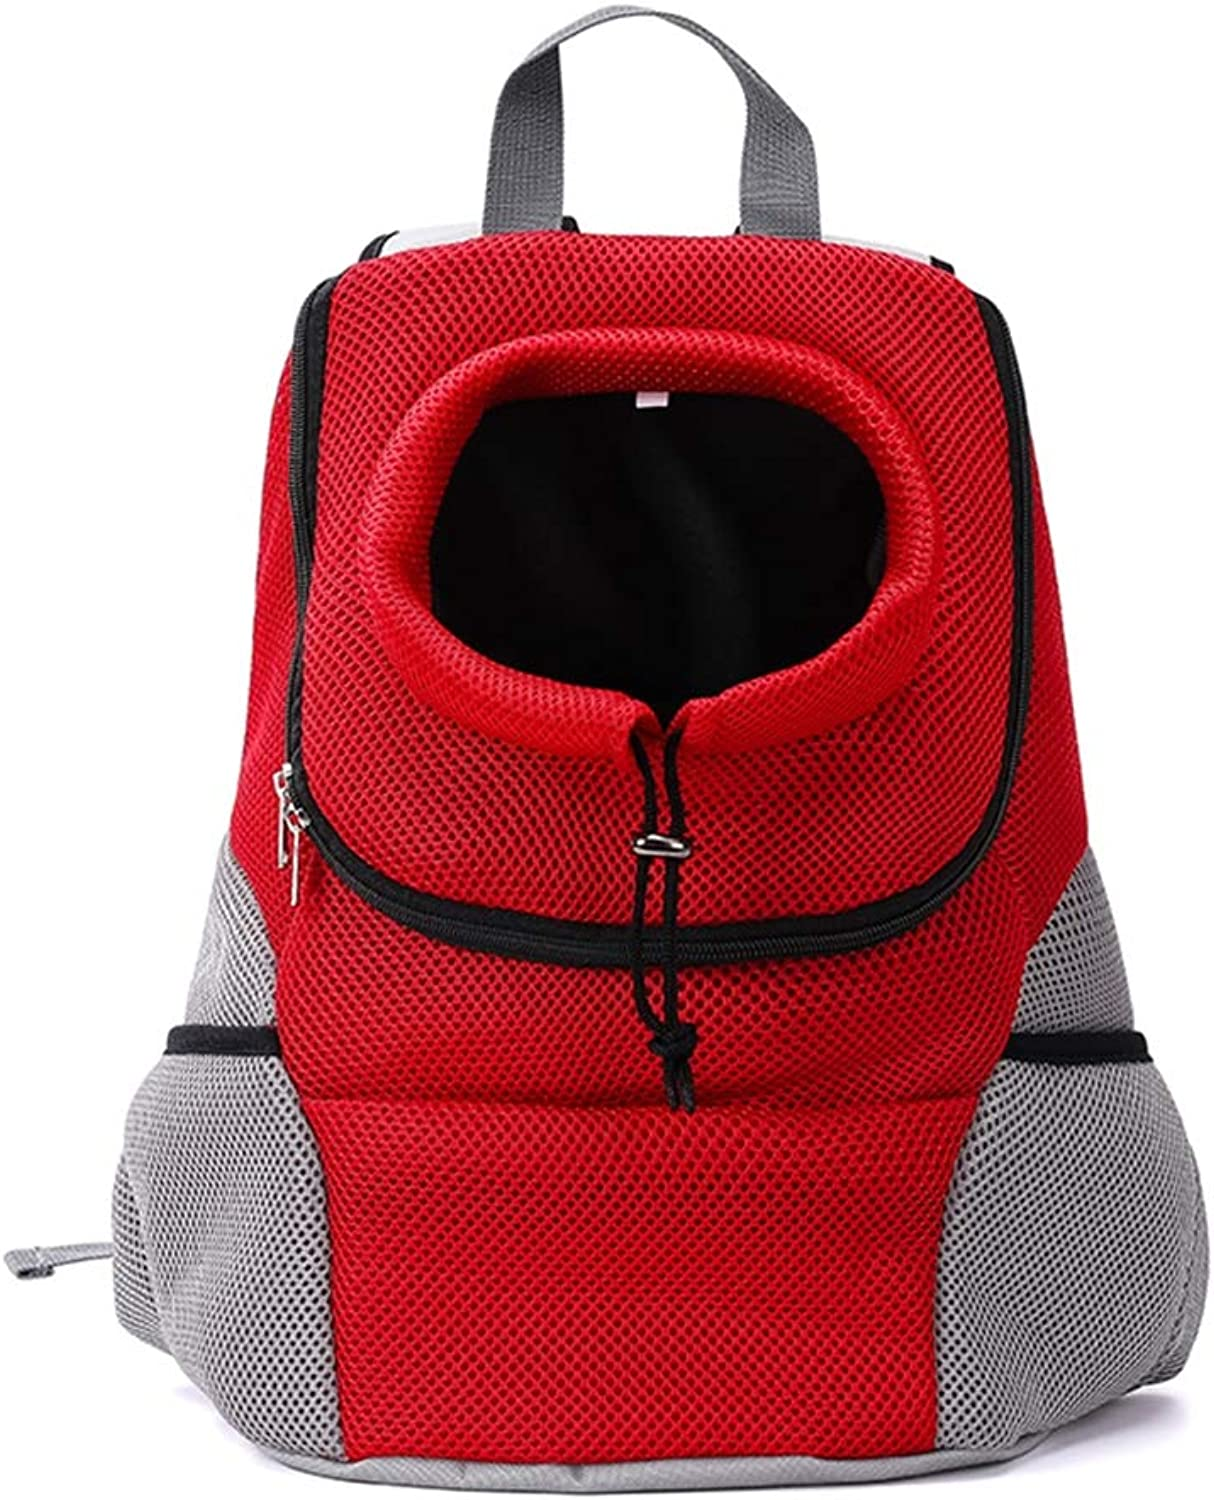 Pet Carrier Backpack Comfortable Dog Cat Travel Carrier Bag Front for Small Dogs Carrier Bike Hiking Outdoor